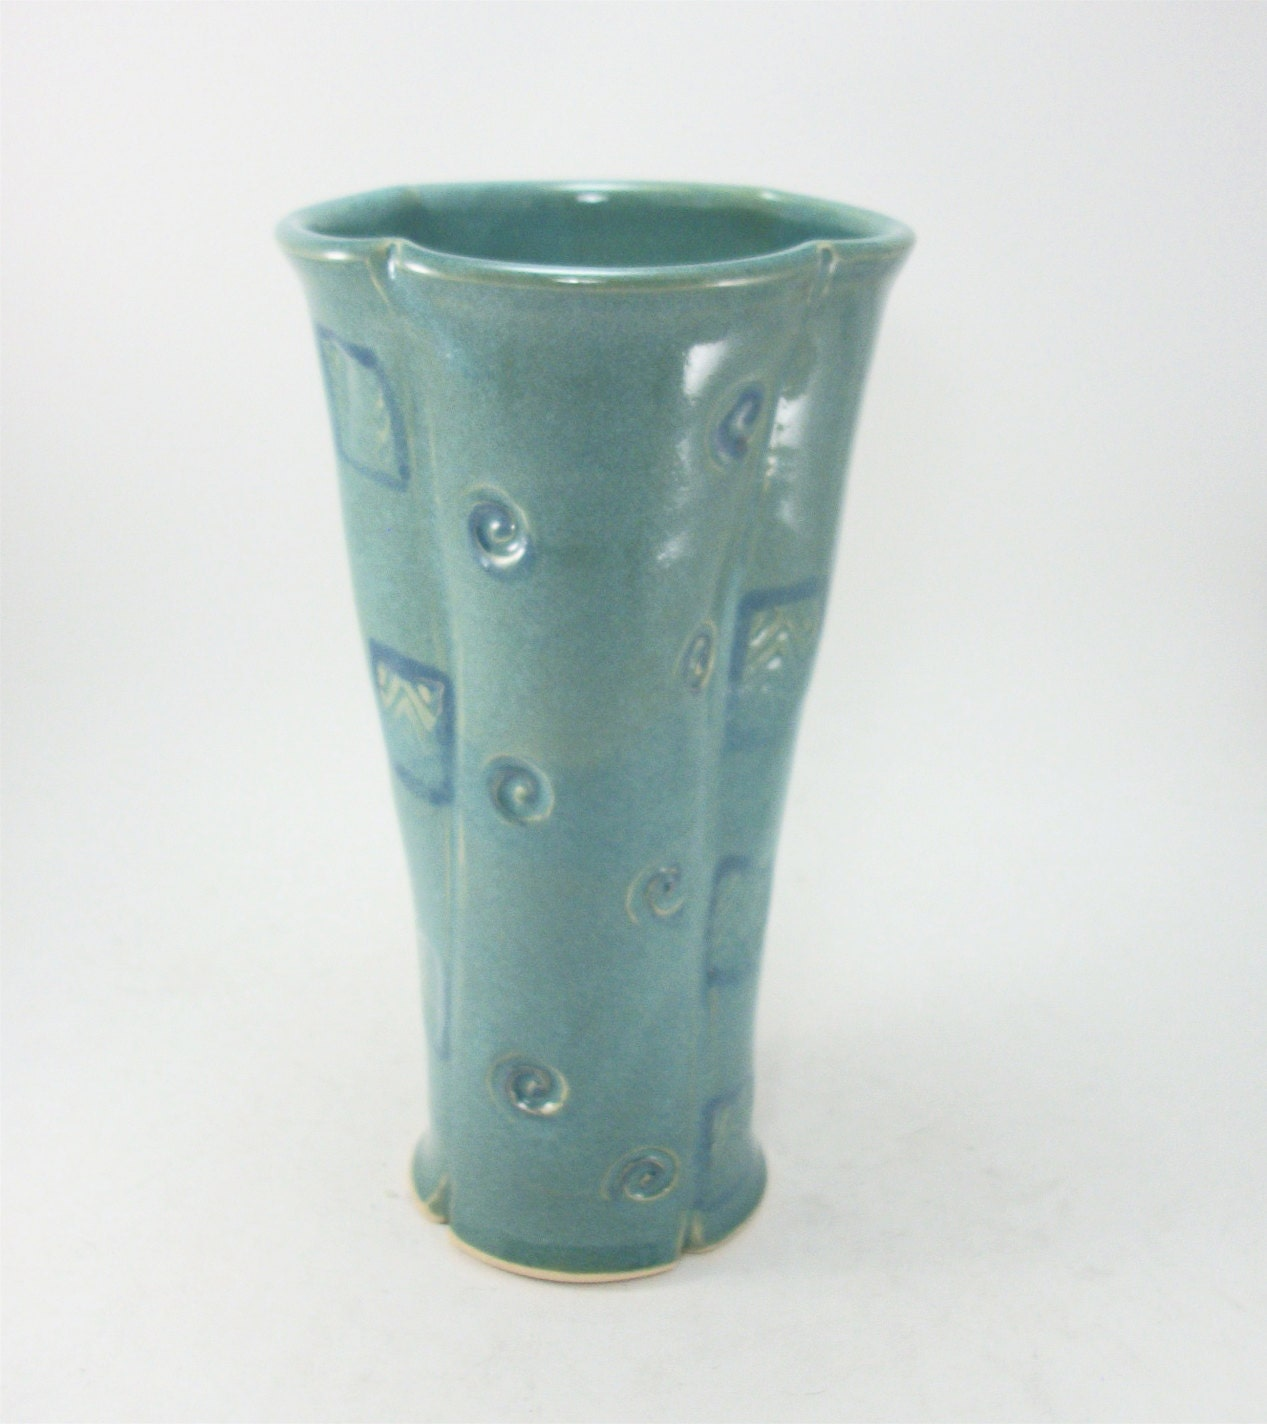 tall skinny turquoise or teal vase